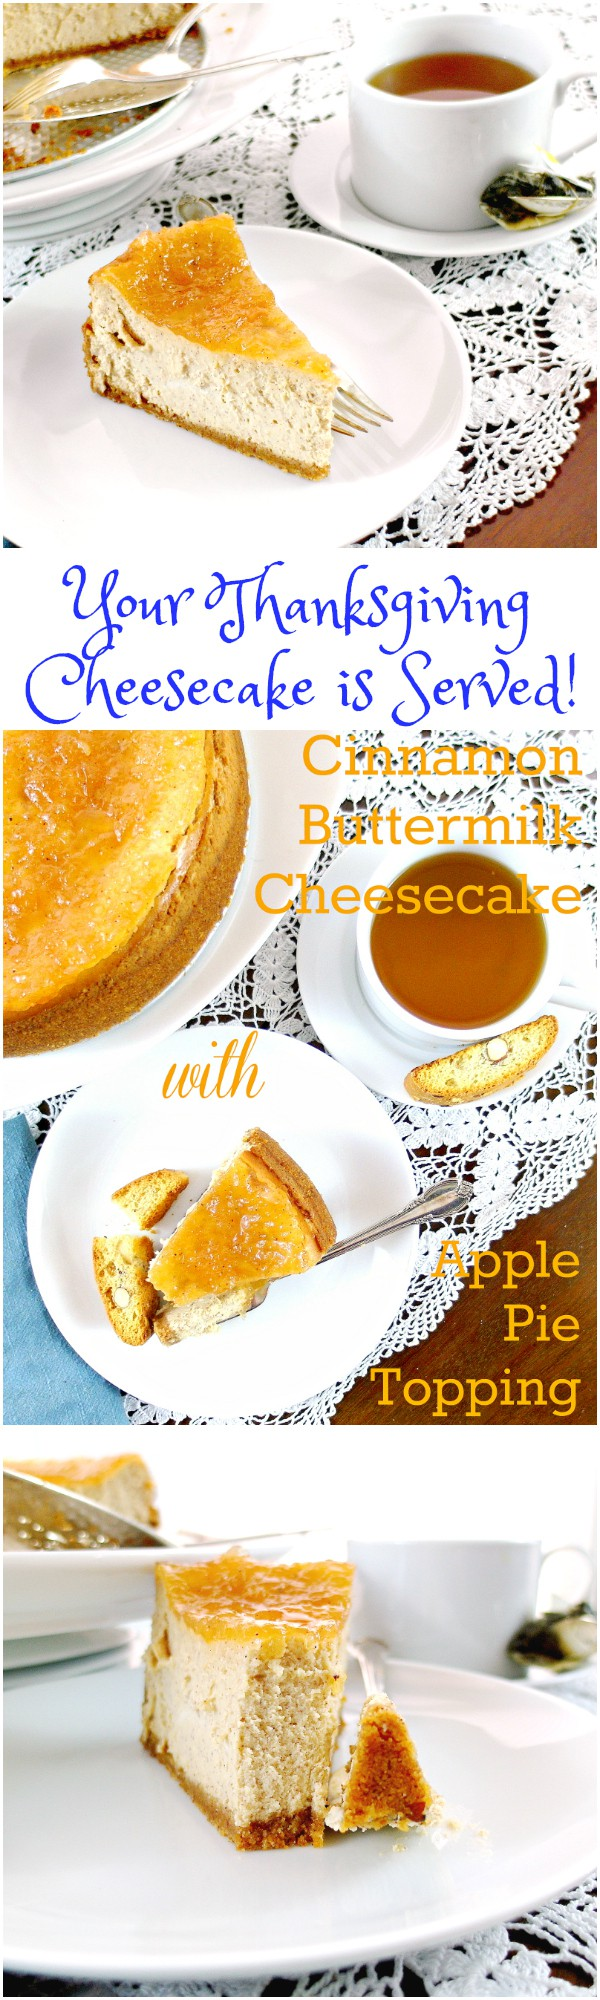 """Collage of pictures showing Cinnamon Buttermilk Cheesecake with Apple Pie Topping. Text reads: """"Your Thanksgiving cheesecake is served""""."""